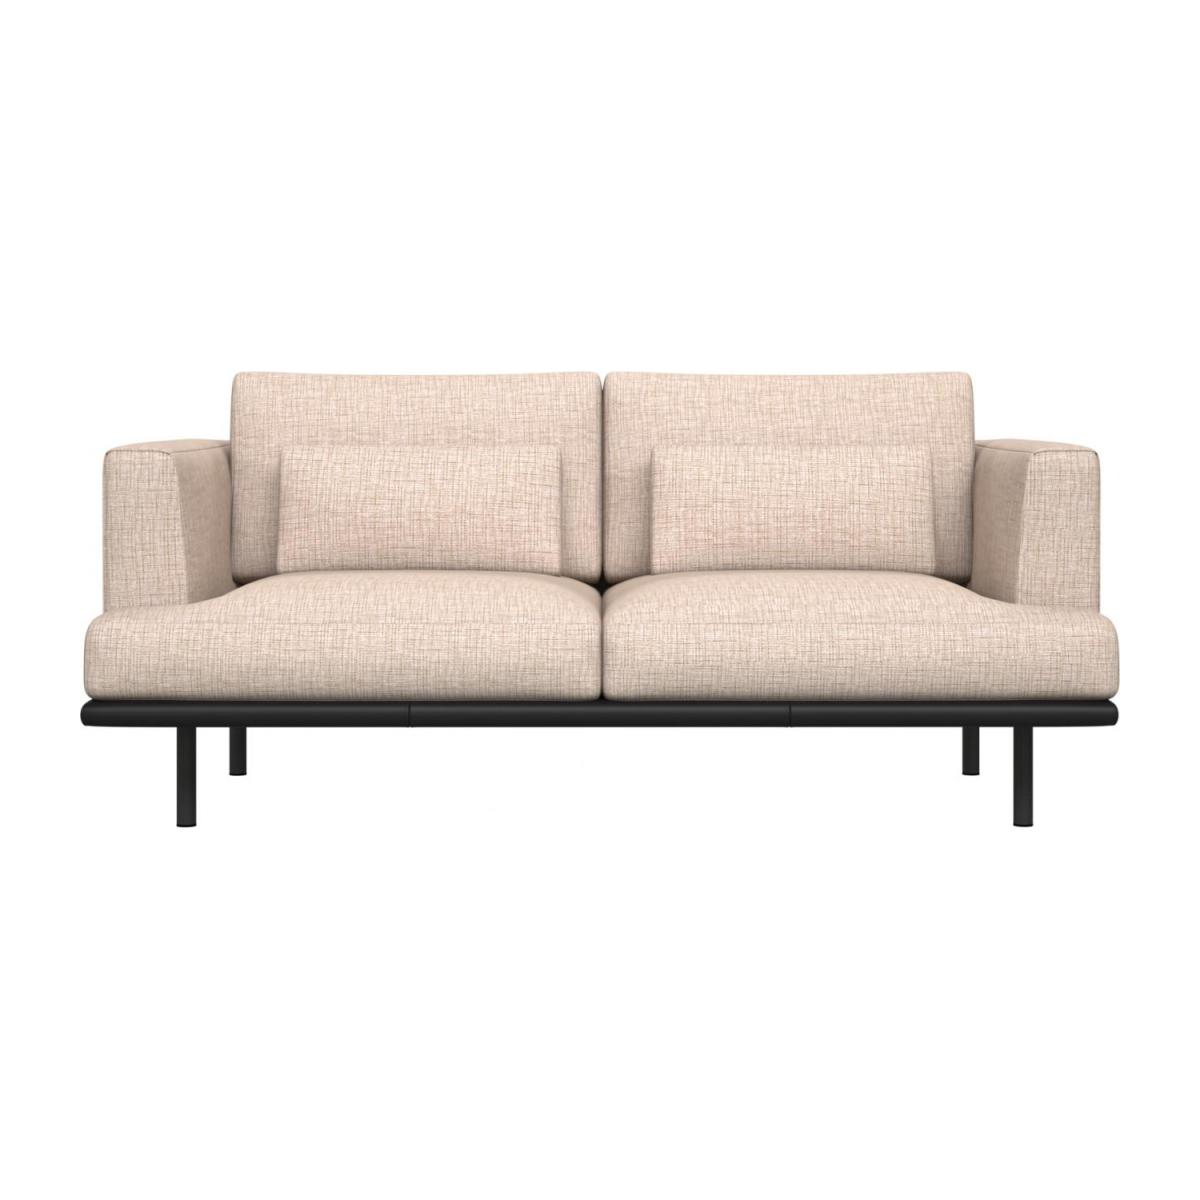 2 seater sofa in Ancio fabric, nature with base in black leather n°2